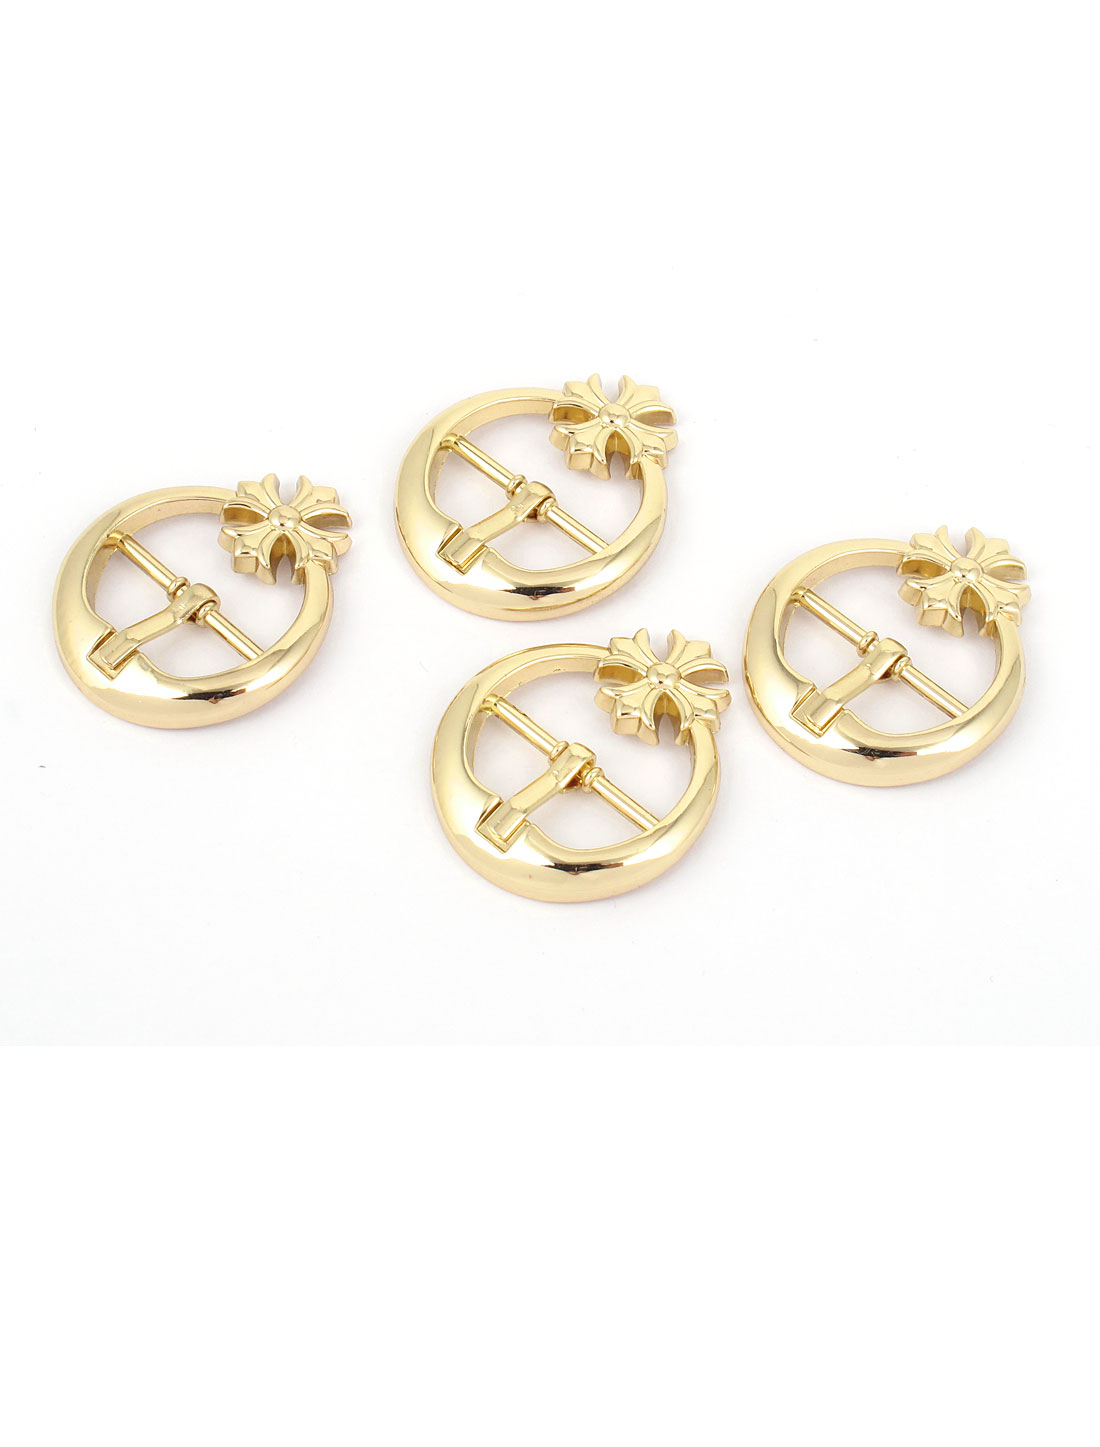 4 Pcs Flower Detail Gold Tone Metal Round Shape Belt Single Pin Buckles